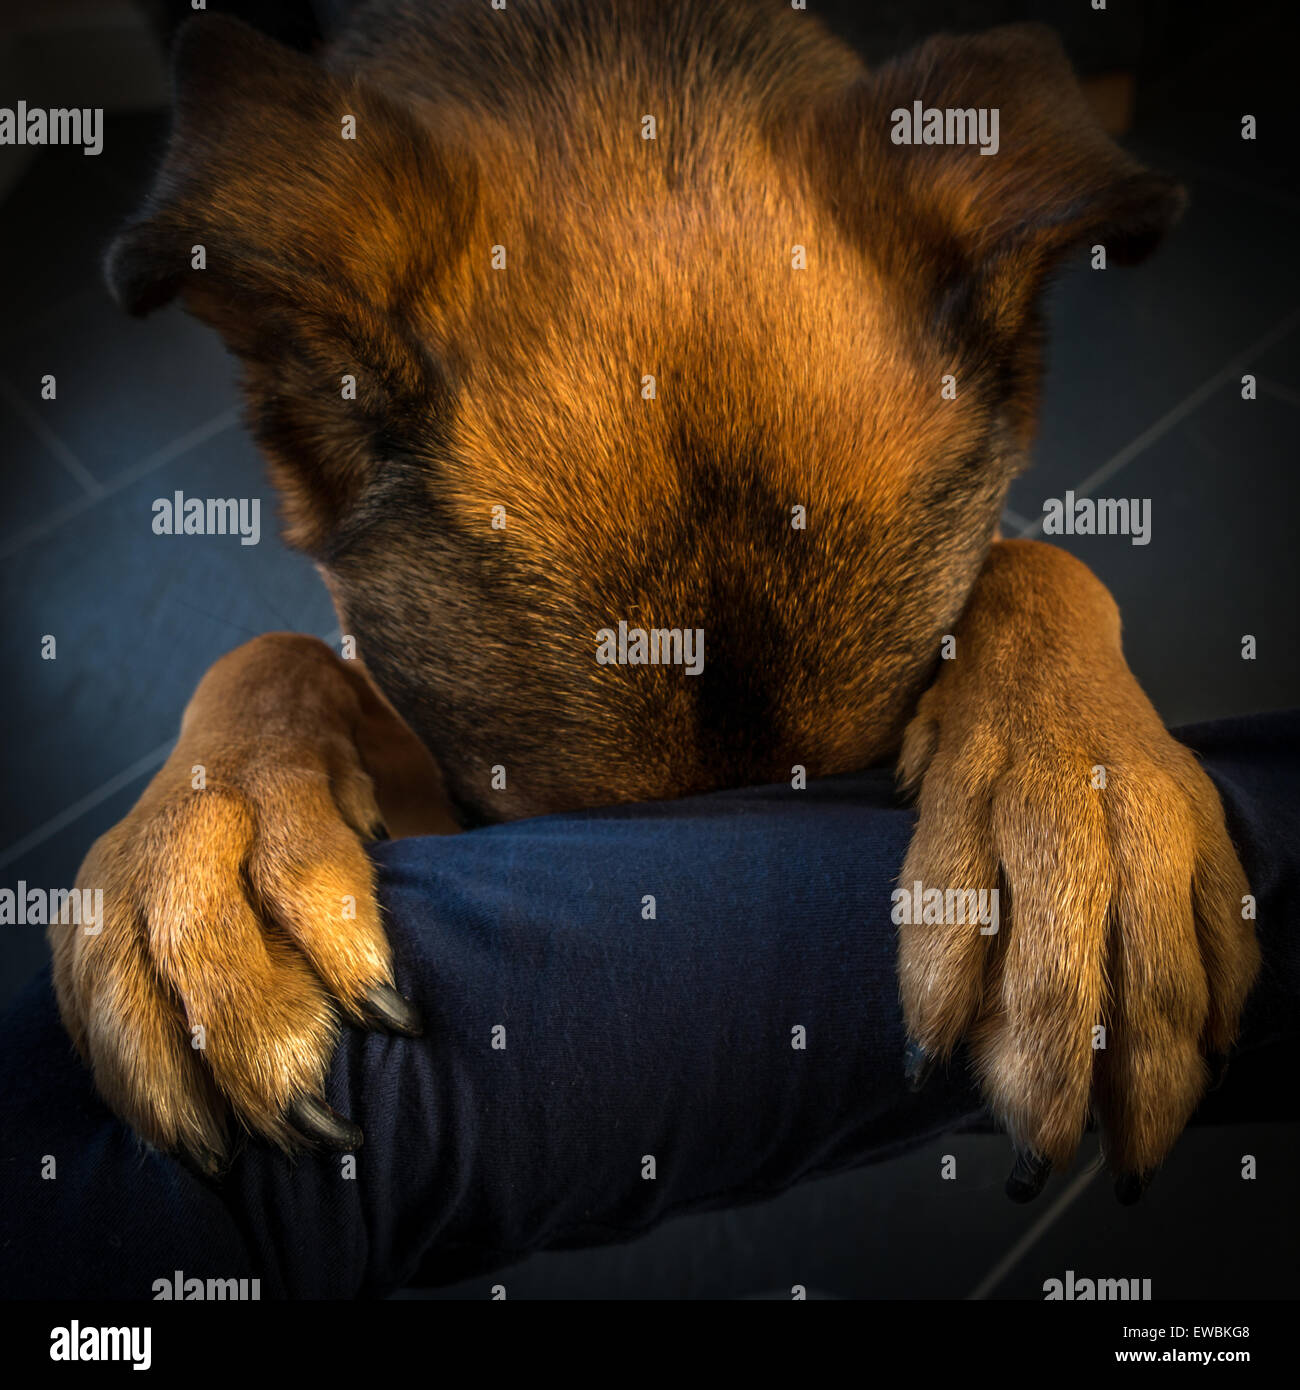 dog praying on someone's arm - Stock Image